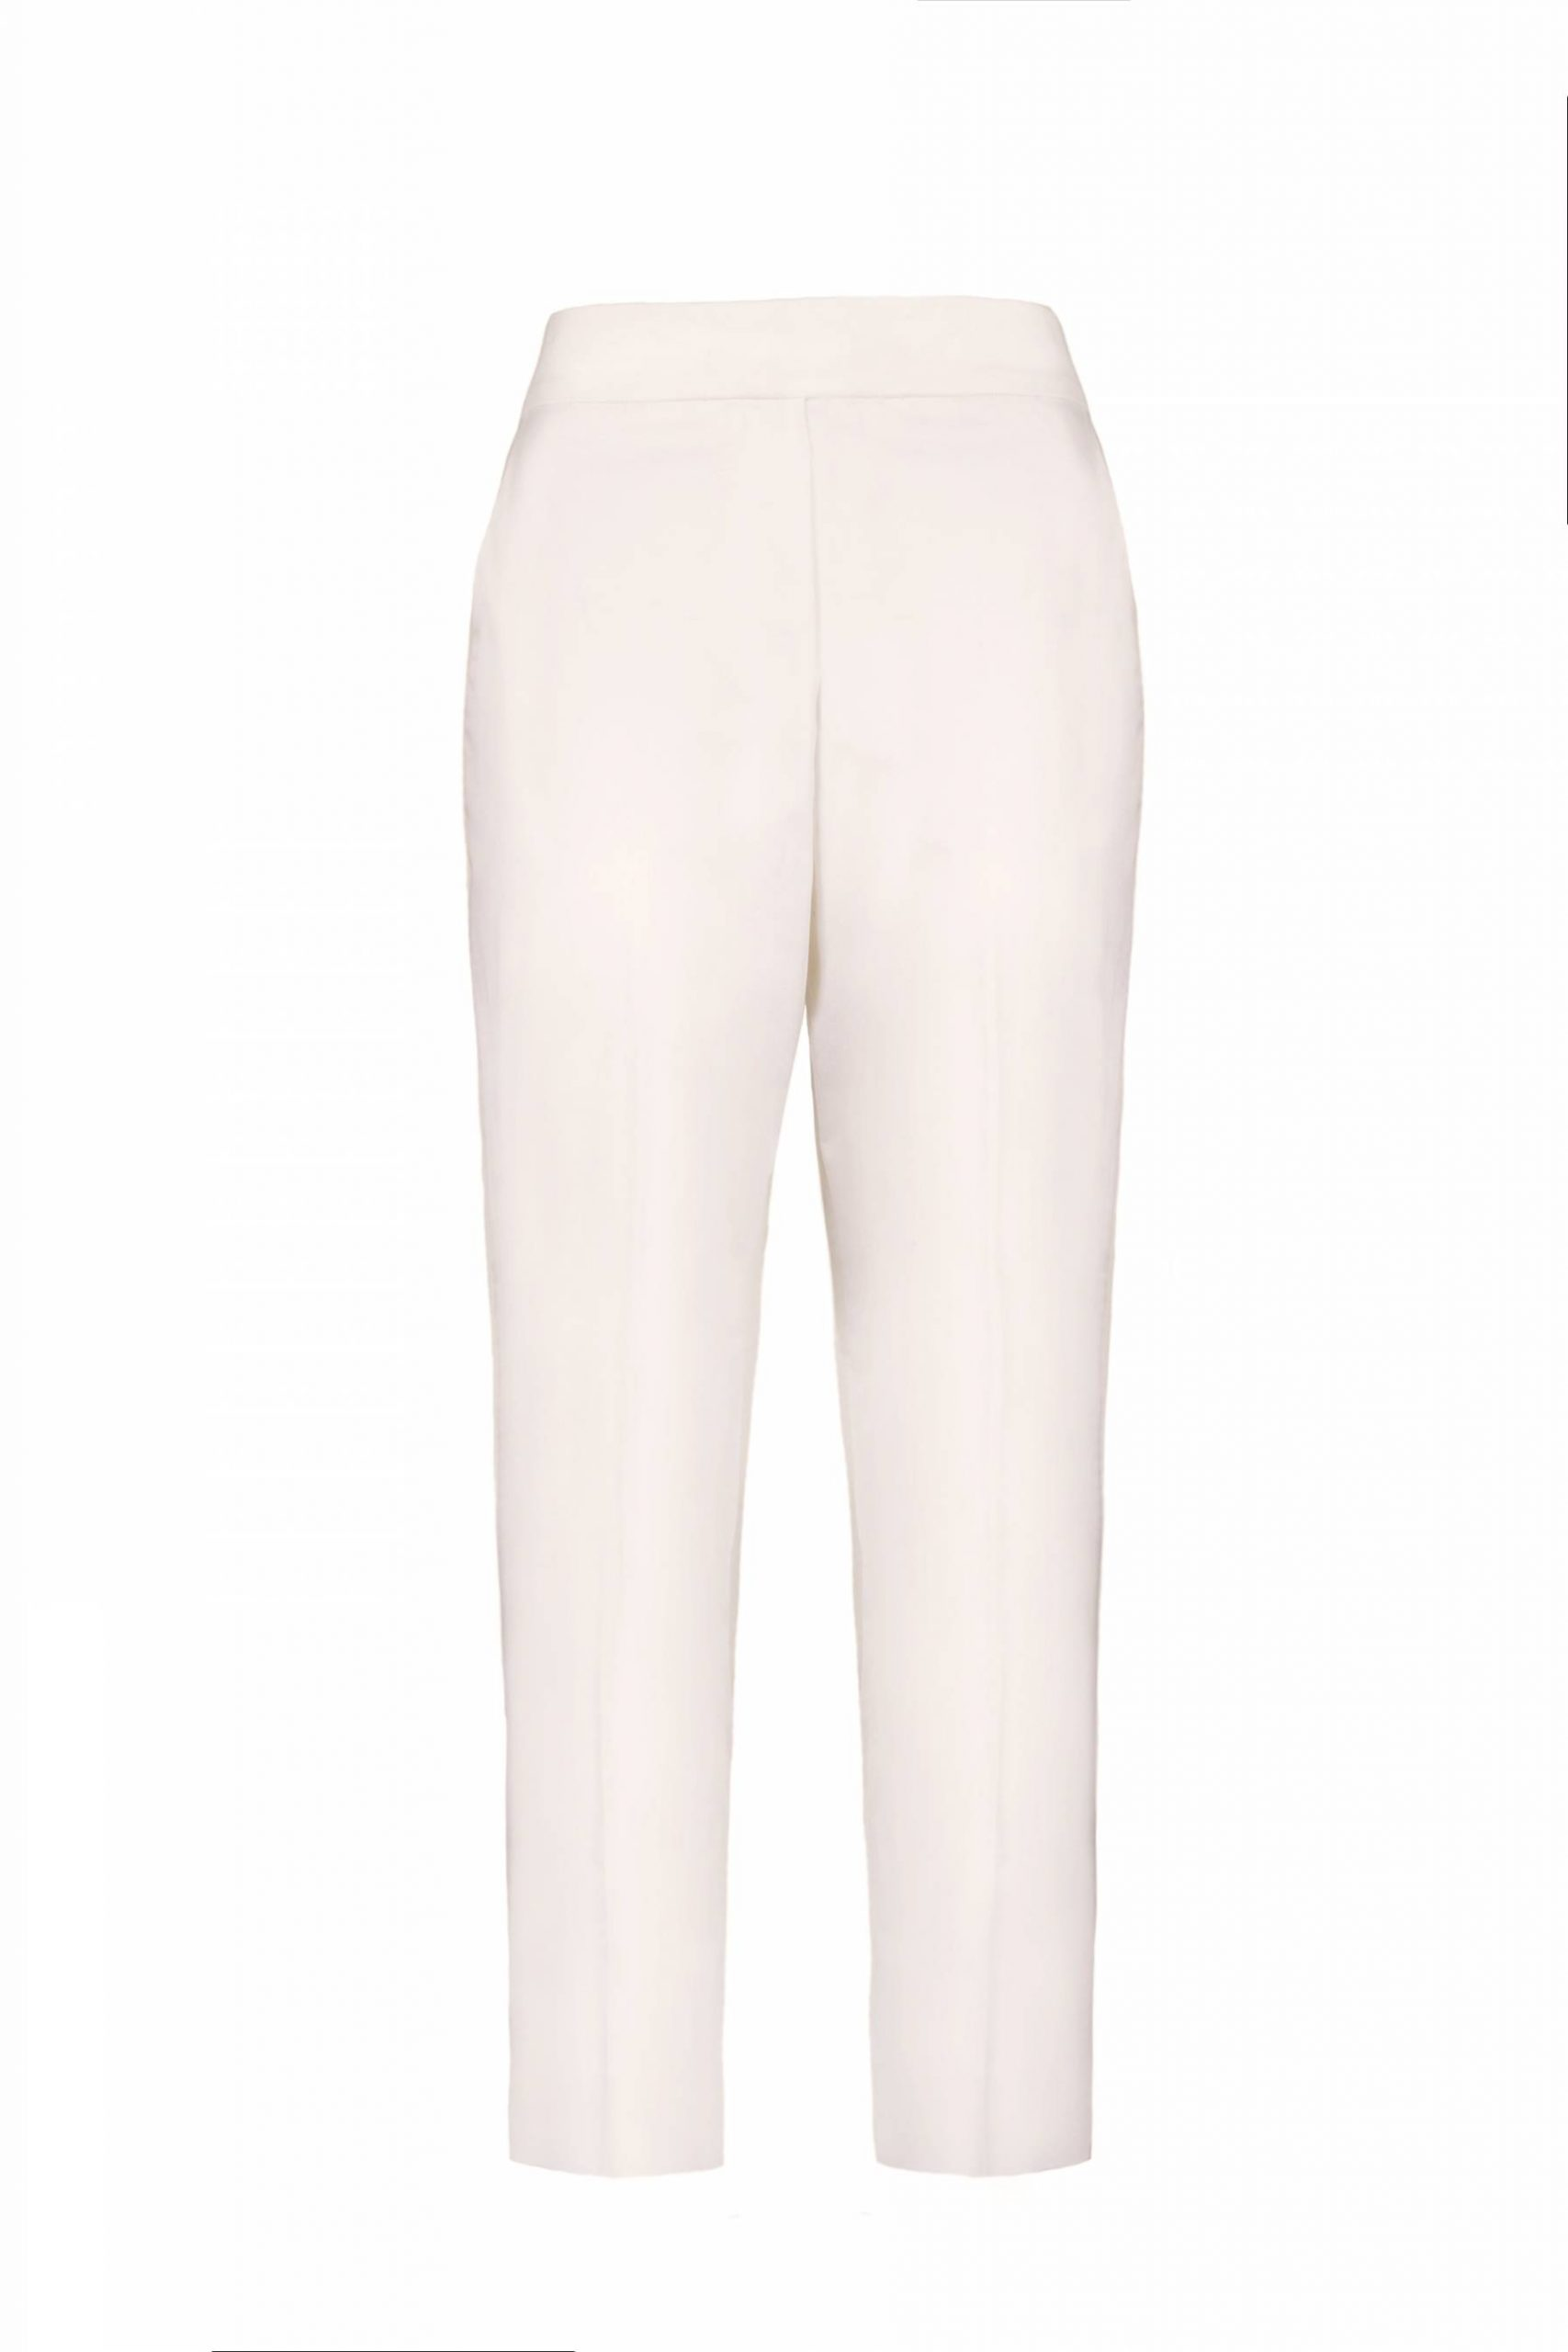 Soft Beige Capri Pants1